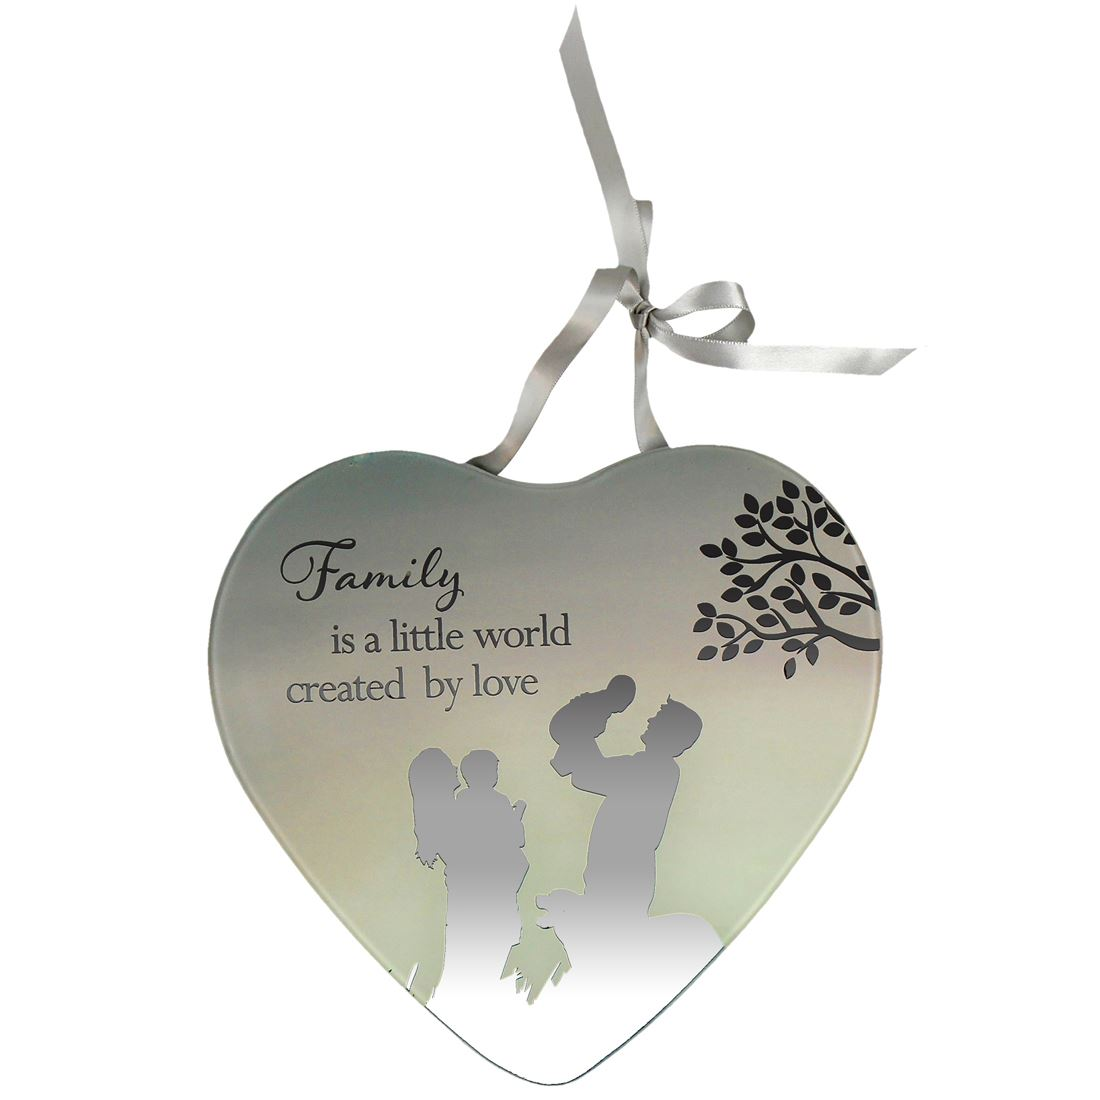 Advanced Molding And Decoration S A De C V Of Reflections Of The Heart Mirror Plaque Ideal Gift